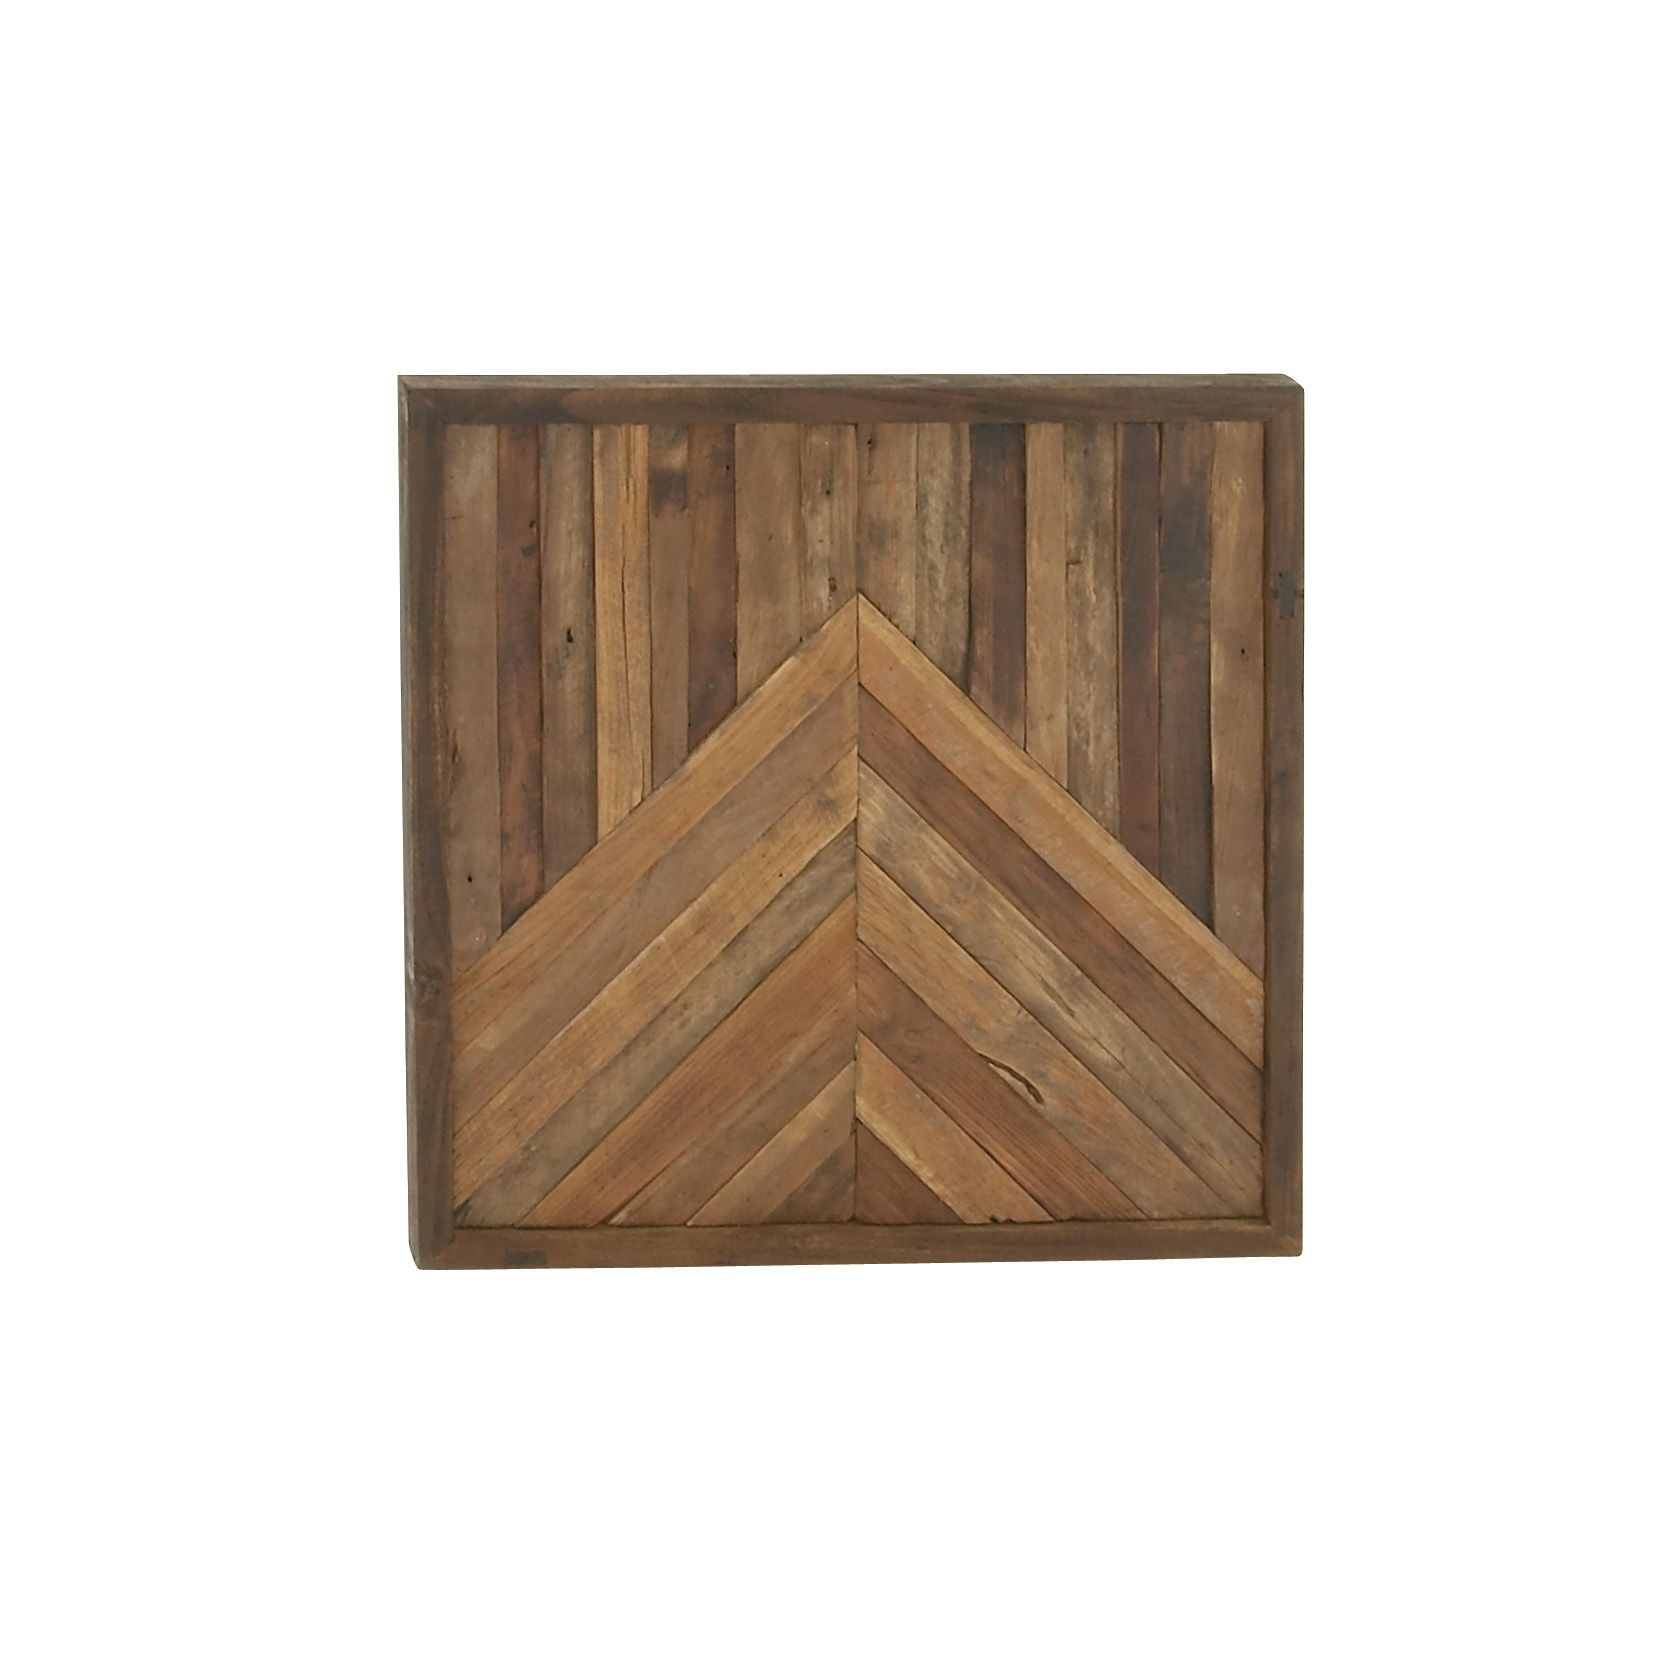 Louisiana Map Decor%0A For added touch of beauty grab this contemporary styled wooden wall decor  that will add style